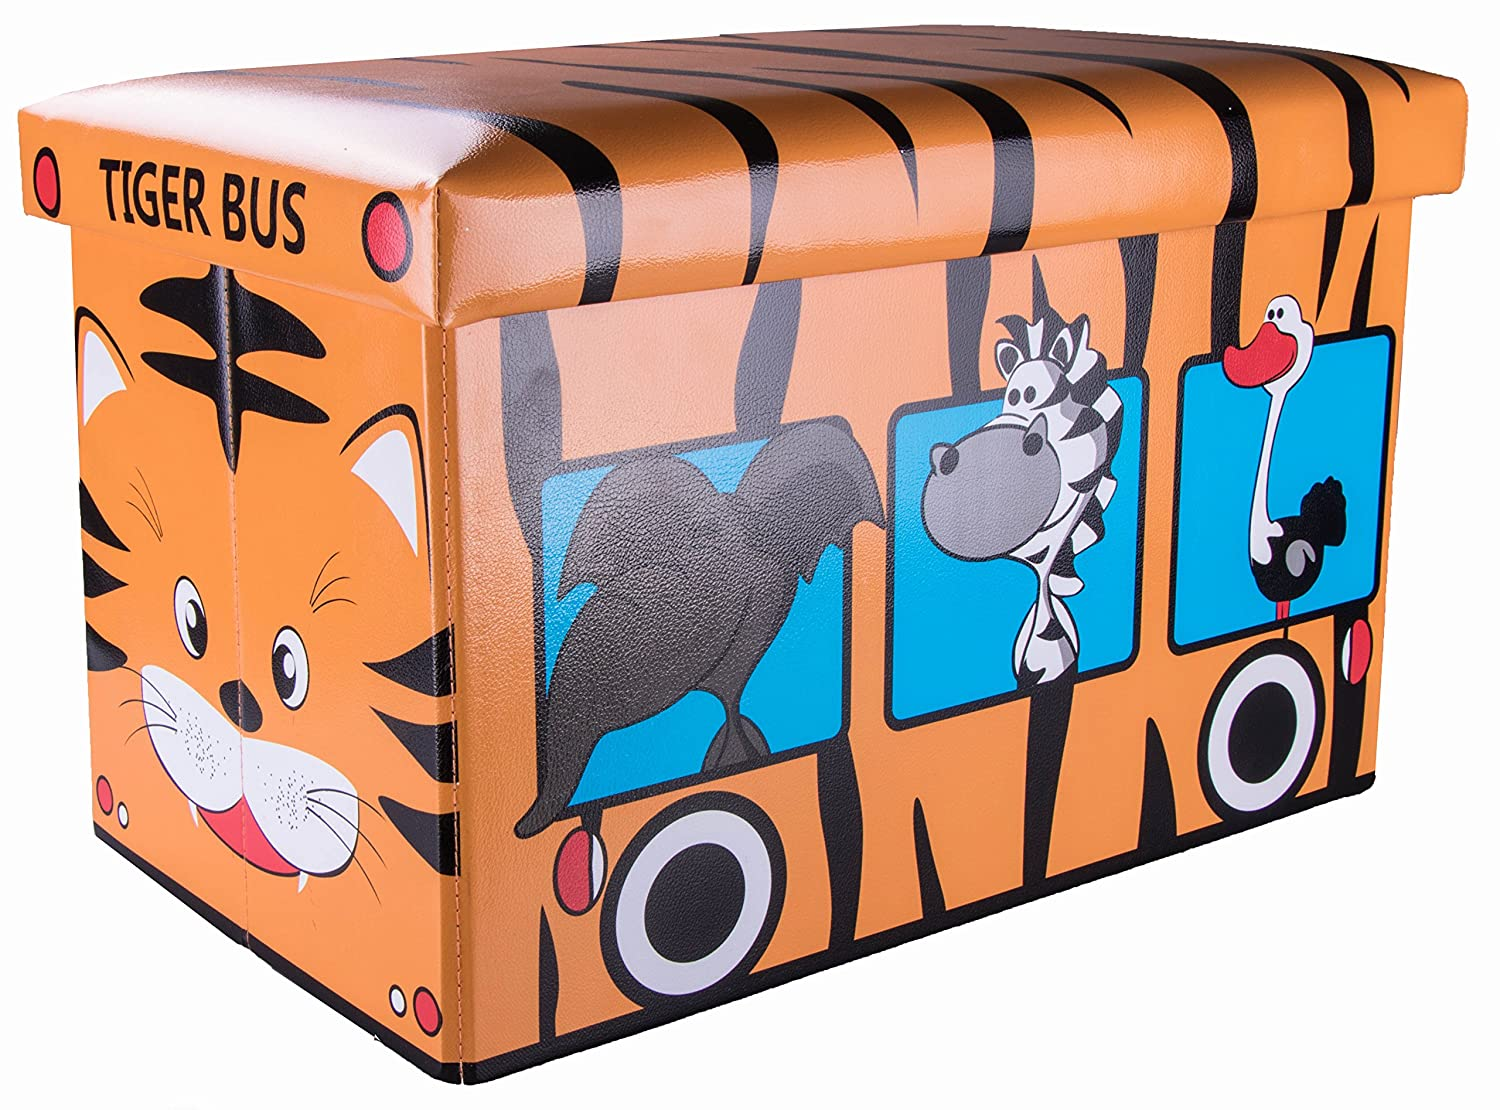 Safari Bus Collapsible Storage Organizer by Clever Creations | Storage Box Folding Storage Ottoman for Your Bedroom | Perfect Size Storage Chest for Books, Shoes & Games